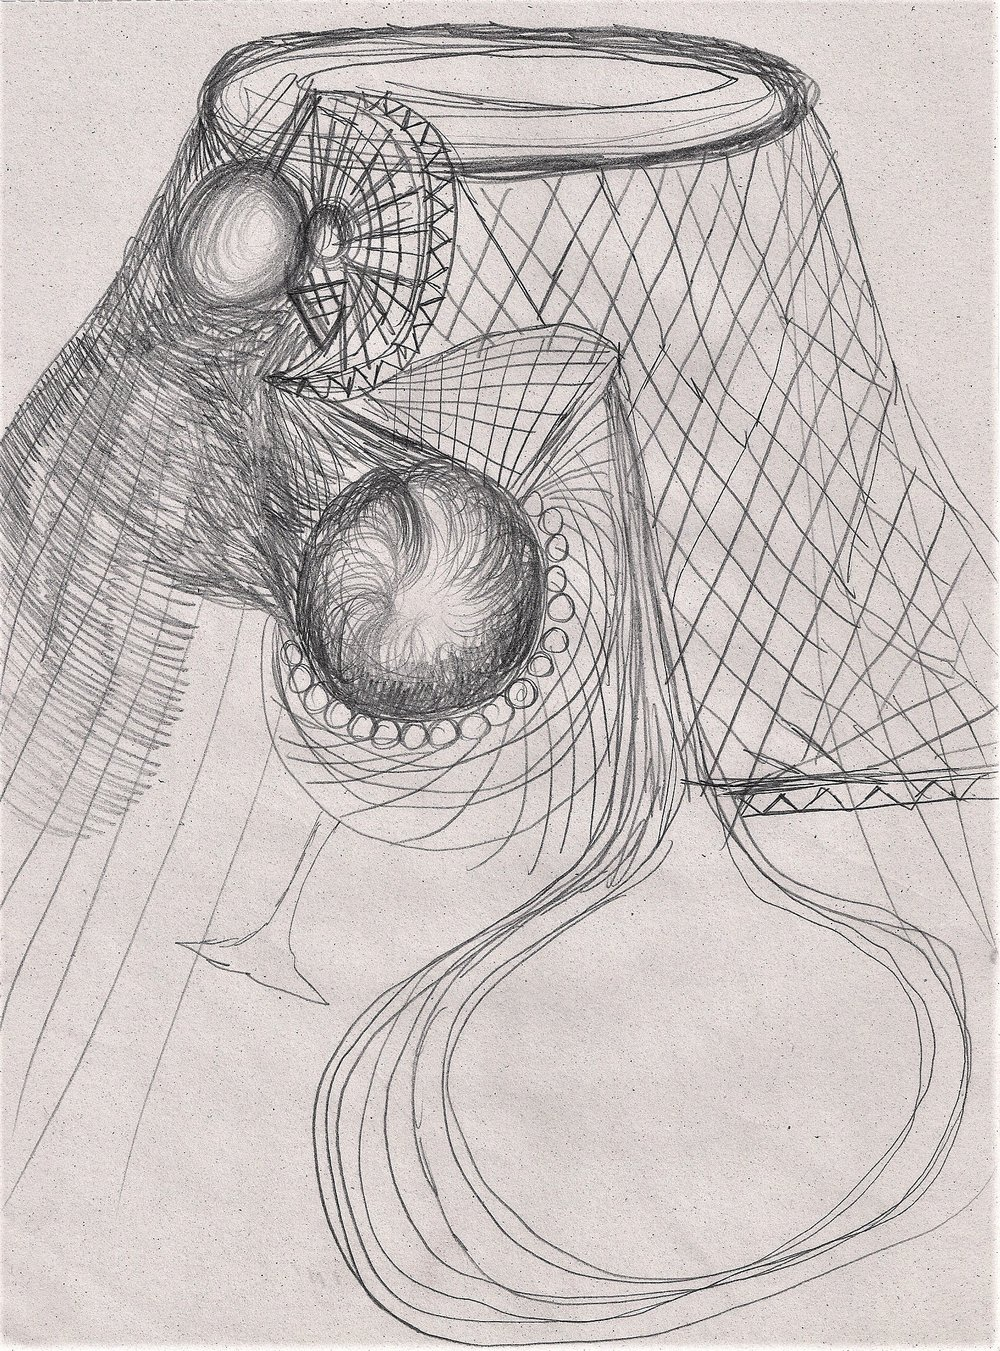 Untitled #3, pencil  on paper, cm 28,3x21.jpg